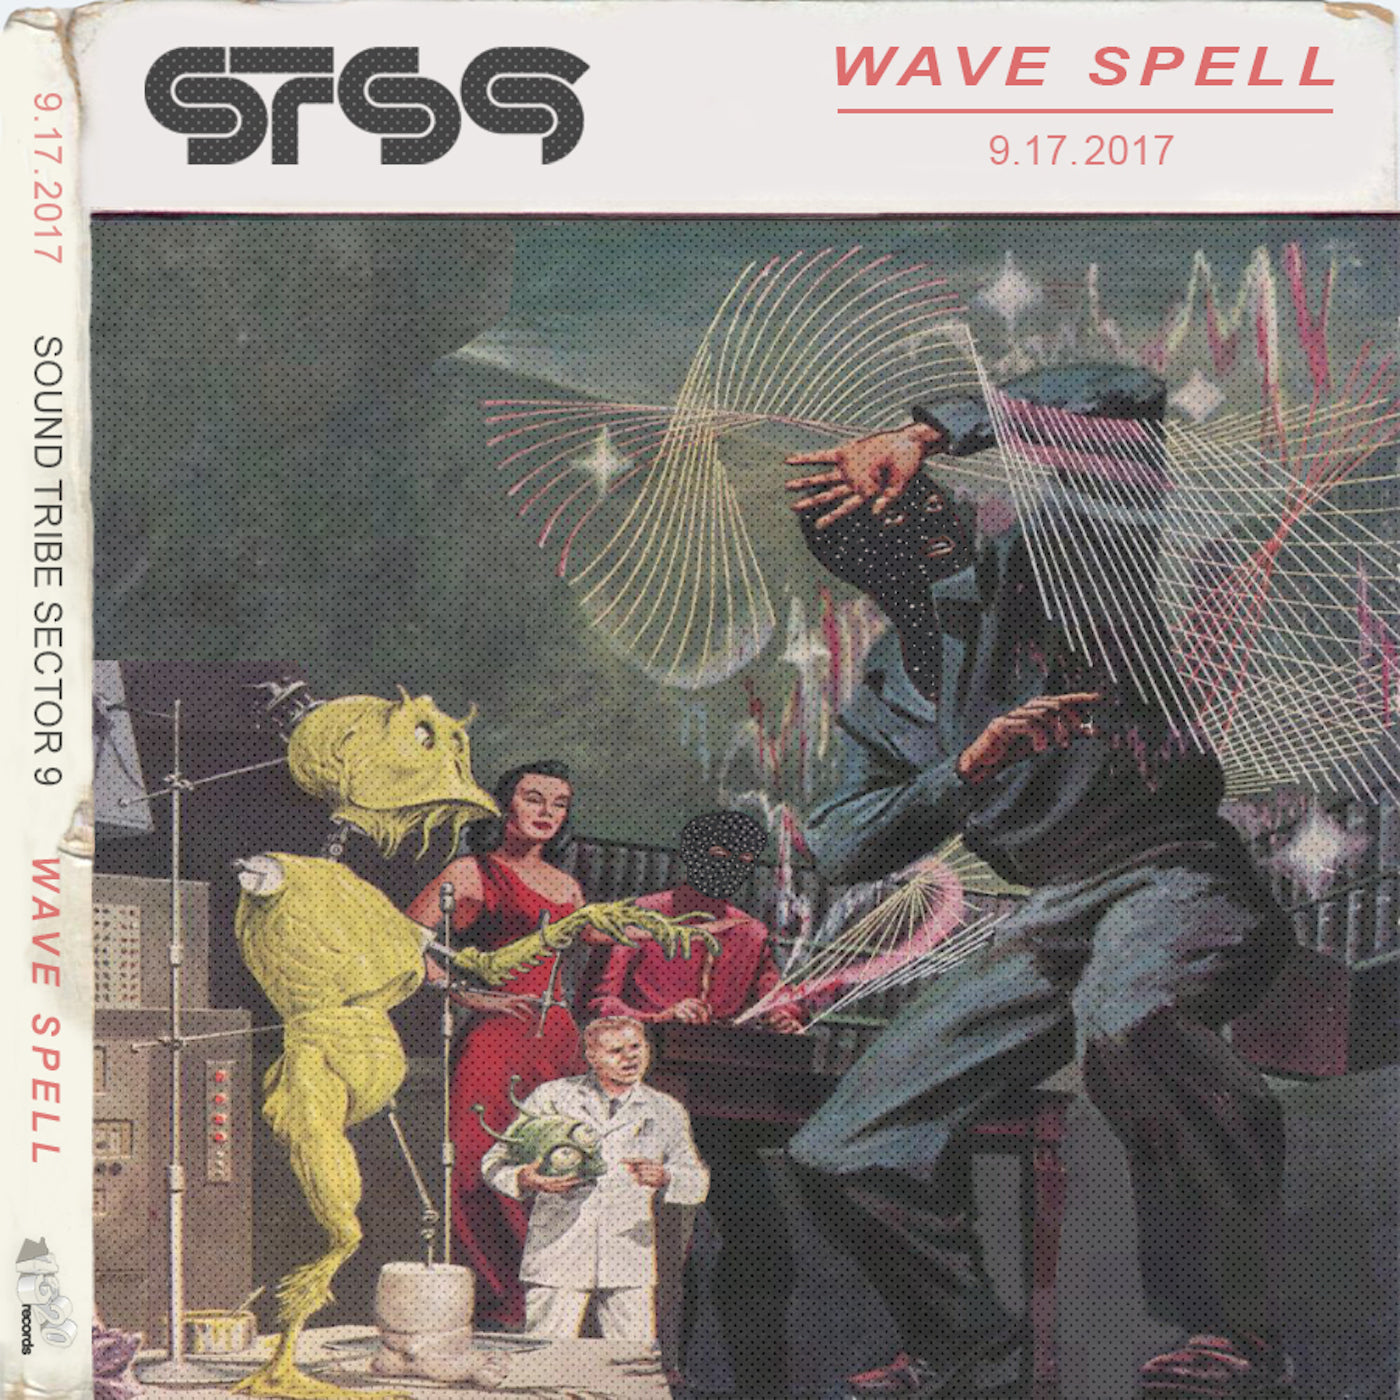 WAVE SPELL